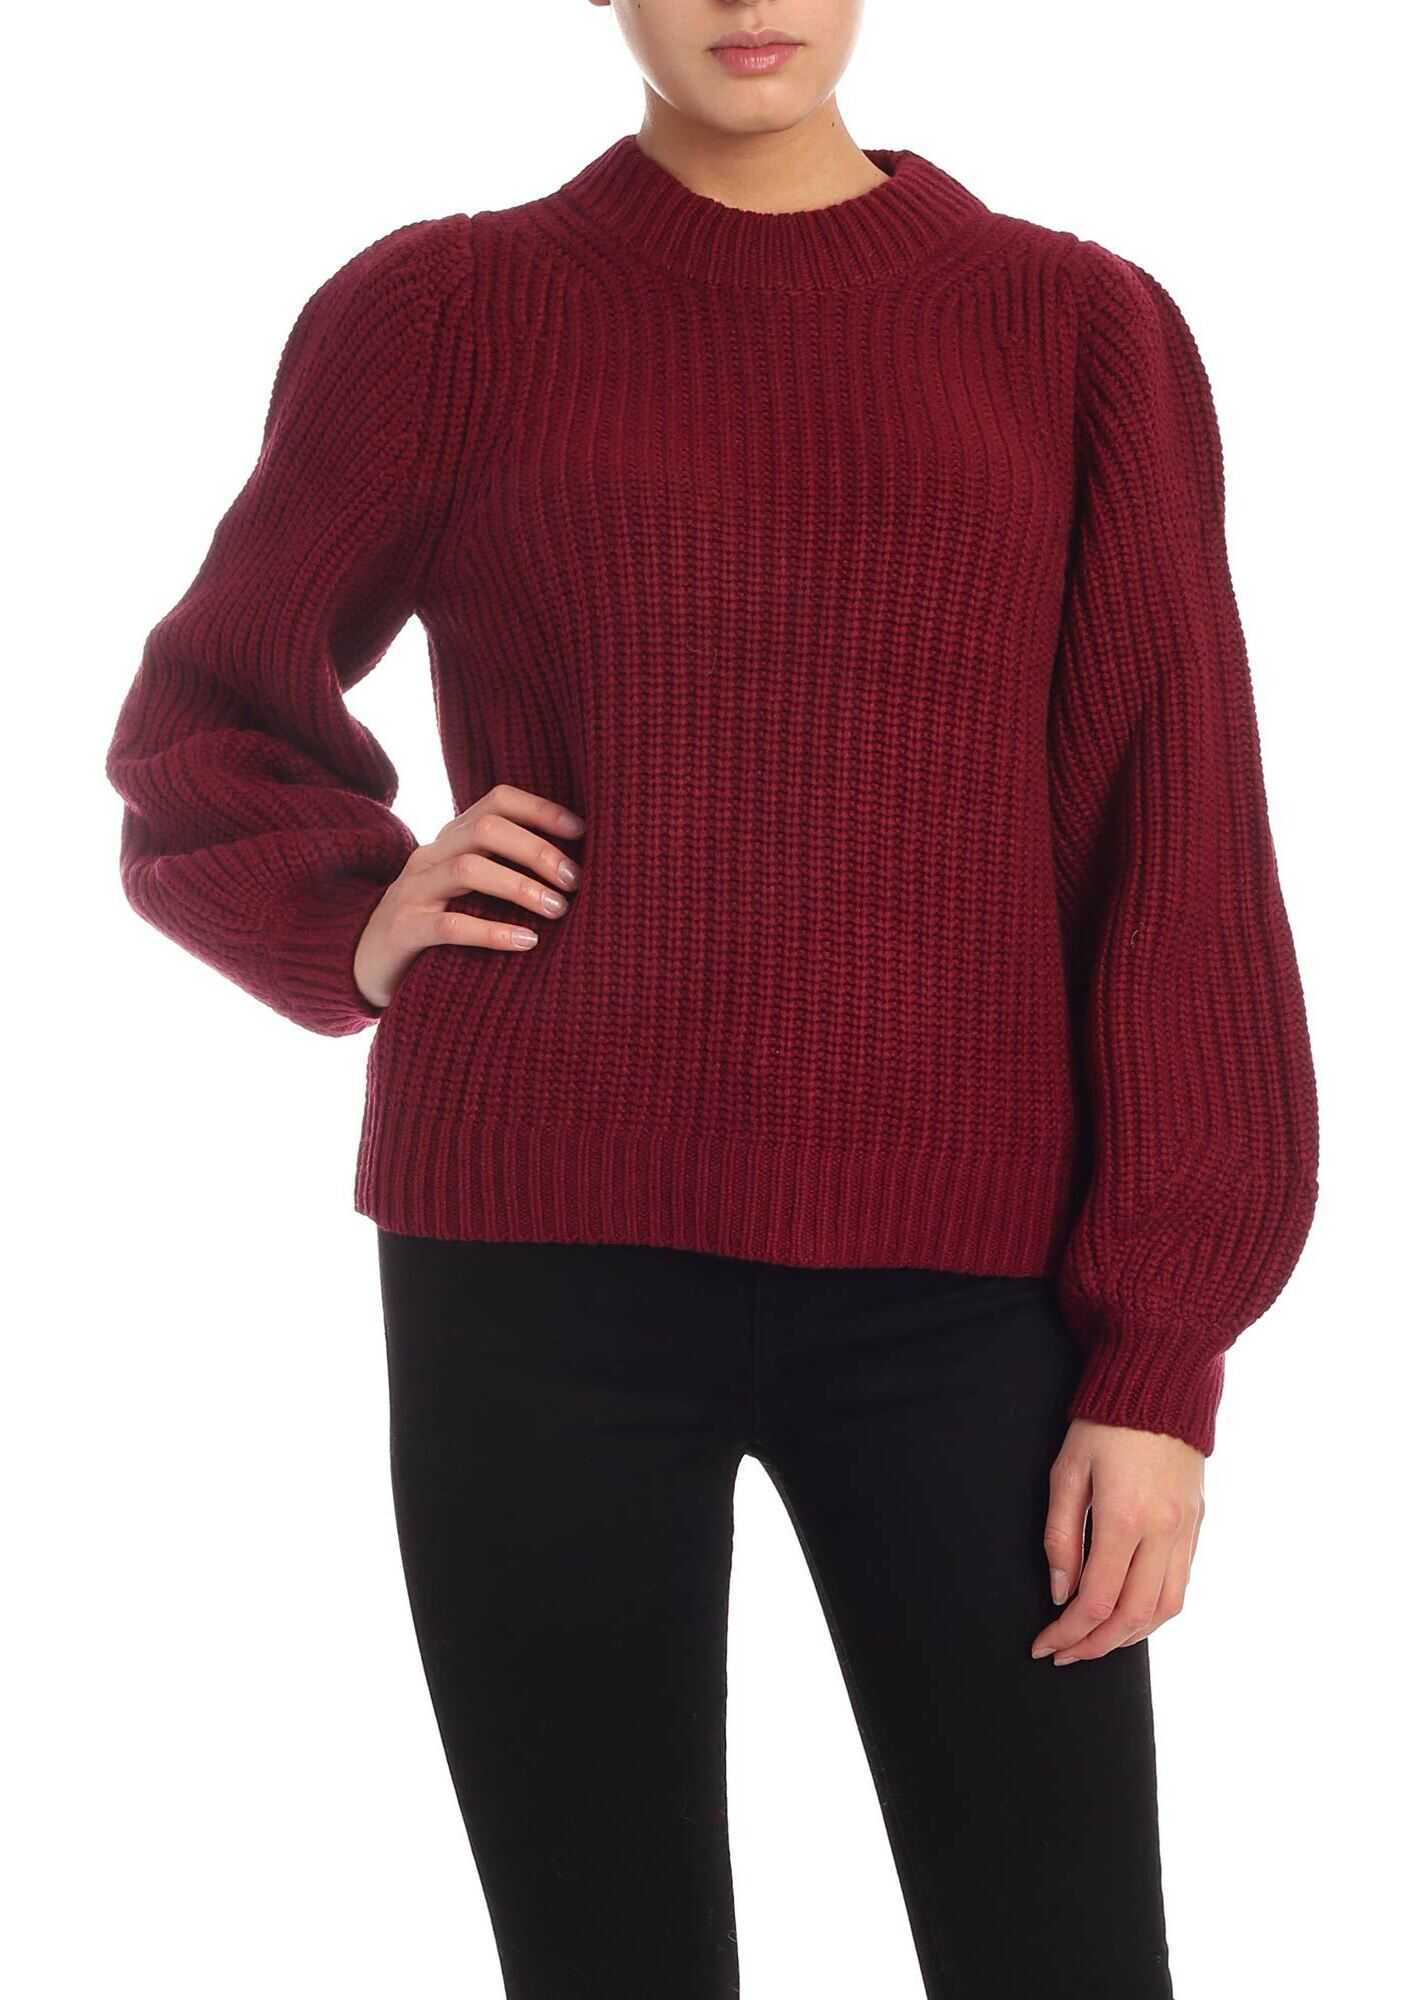 Michael Kors Puff Sleeves Pullover In Burgundy Red